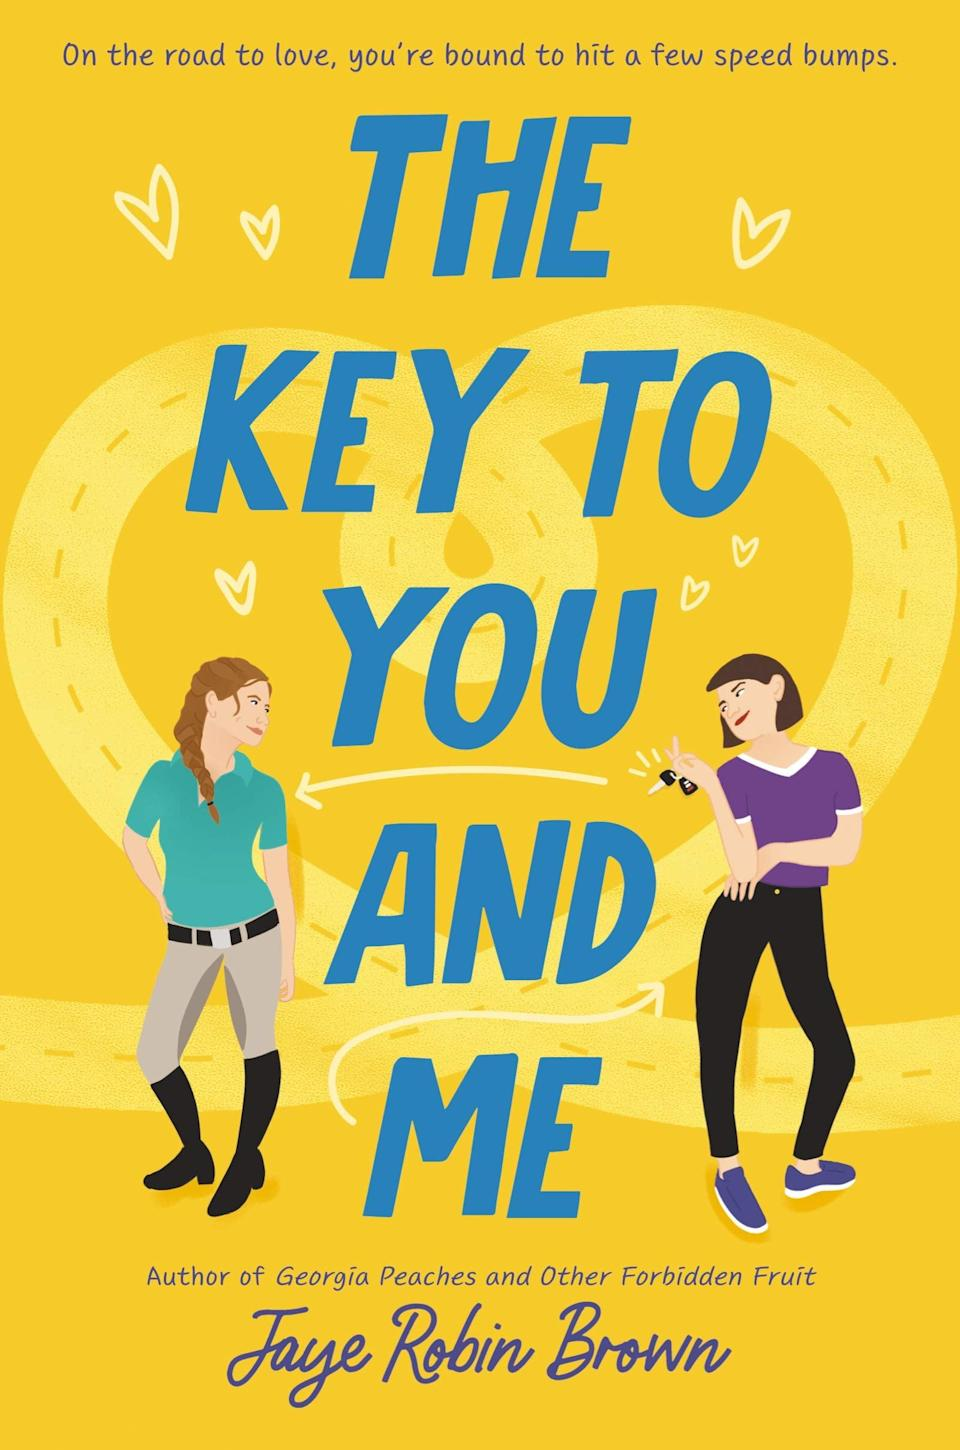 <p><span><strong>The Key to You and Me</strong></span> by Jaye Robin Brown is an adorable LGBTQ+ YA romance about a young woman overcoming her fear of driving and falling in love in the process. Piper Kitts's summer at her grandmother's is supposed to be all about horseback riding and moving on from her ex-girlfriend. But then her grandmother decides she needs to learn how to drive, and local girl Kat Pearson is going to be the one who teaches her.</p> <p><em>Out April 20</em></p>